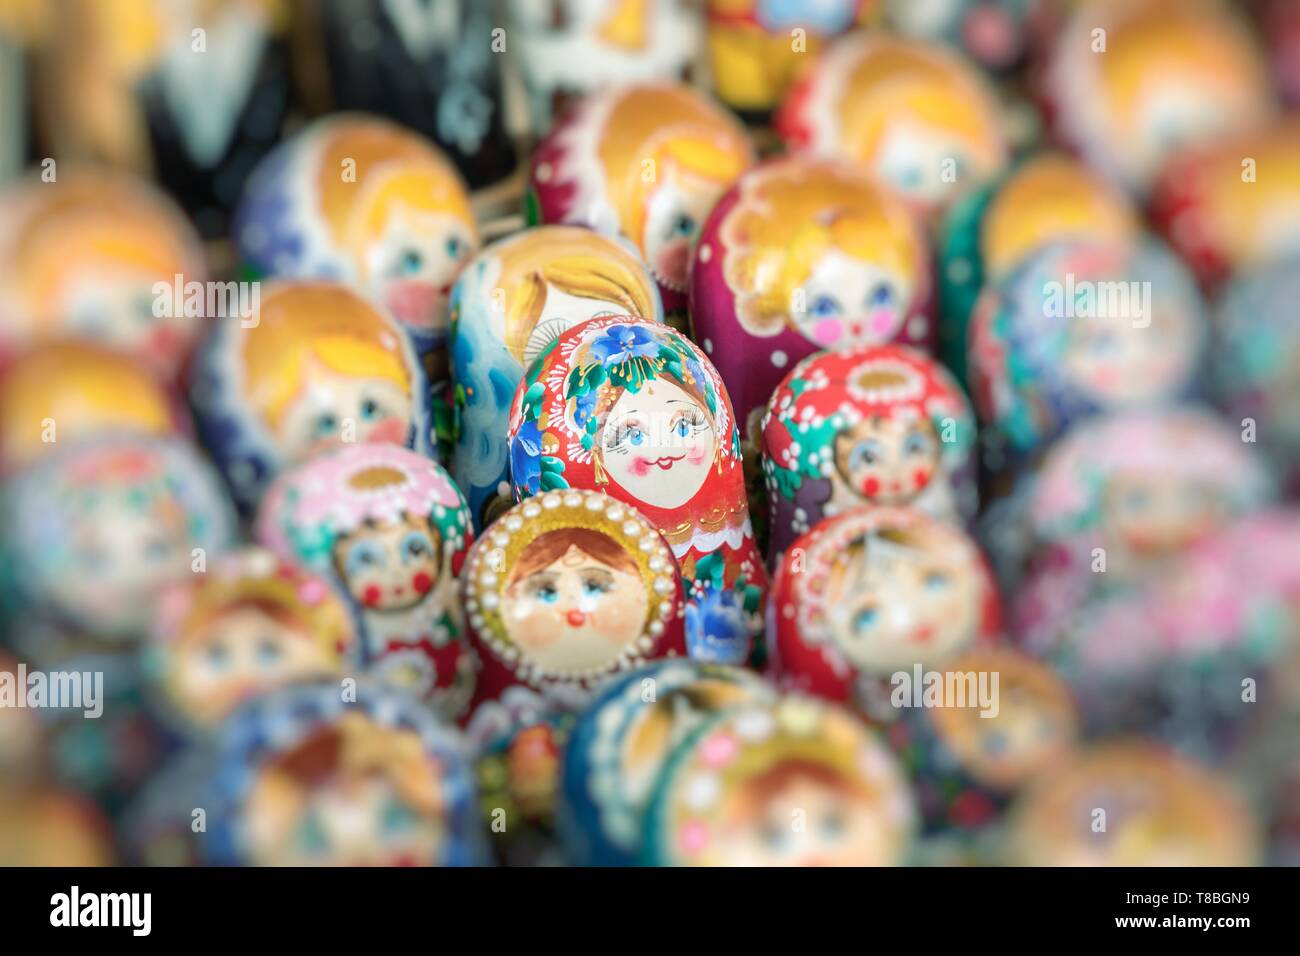 Nested dolls in the souvenir from Ukraine. Selective Focus. - Stock Image